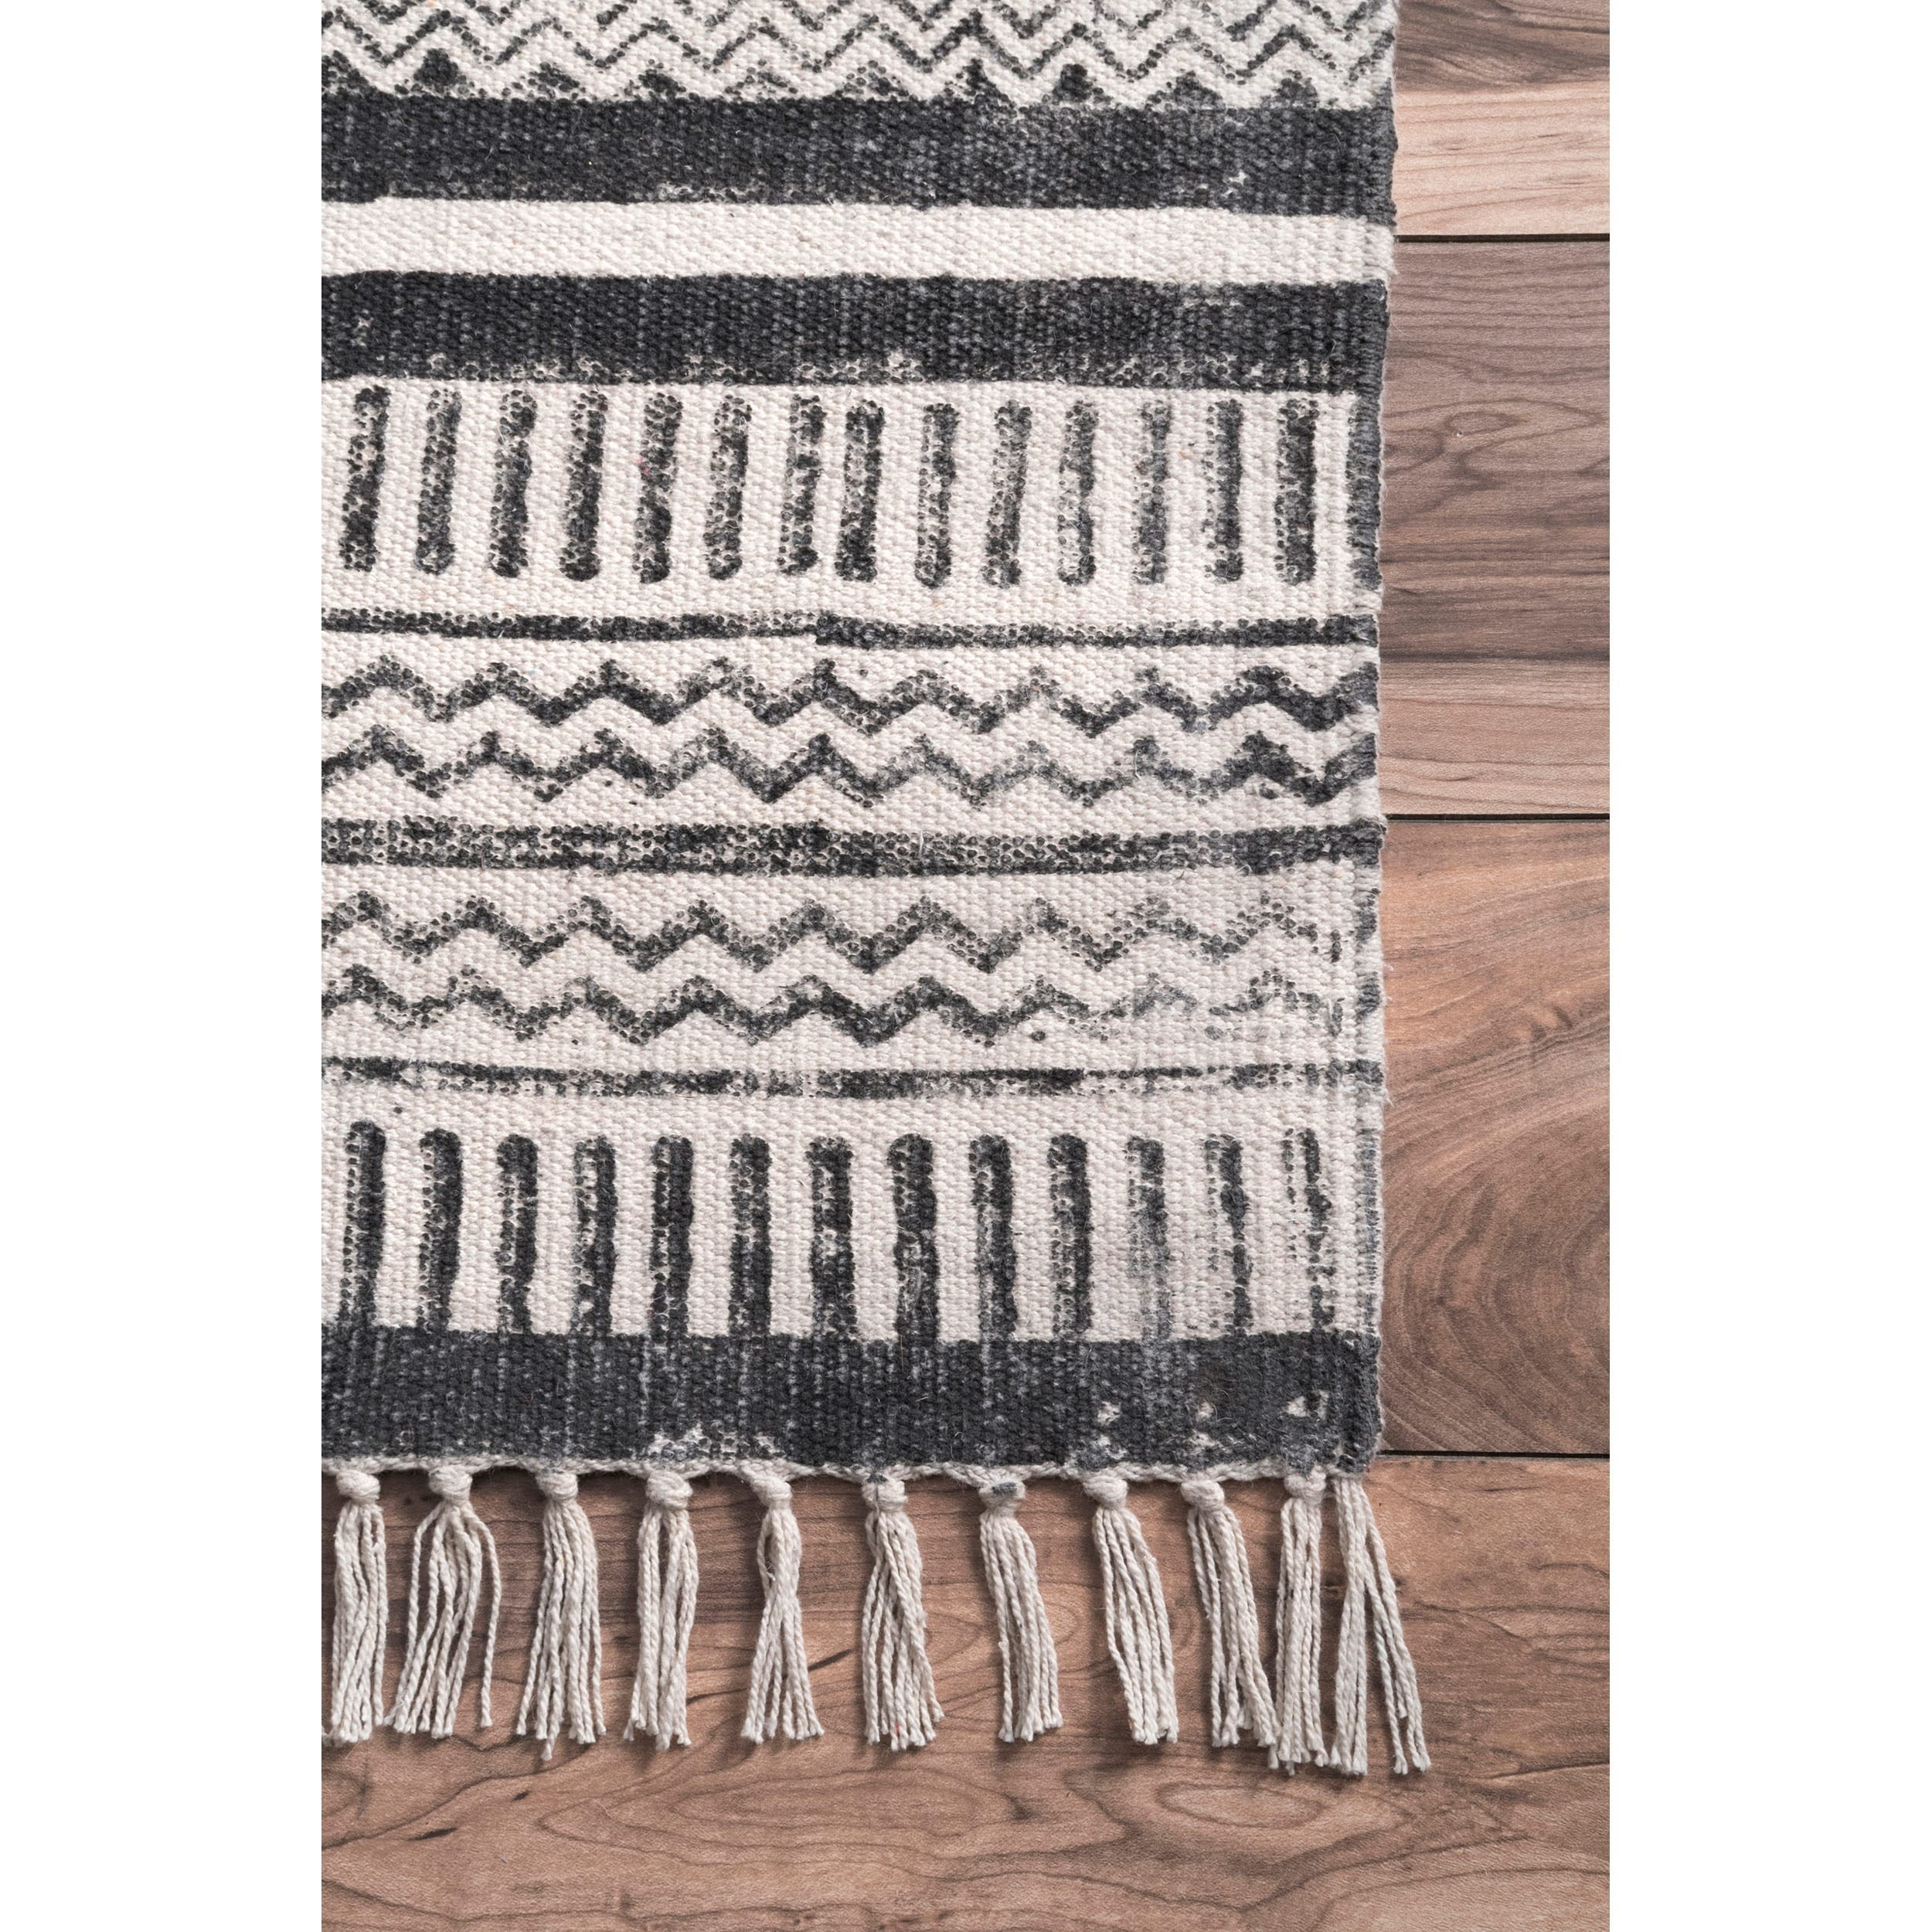 Nuloom Handmade Flatweave Textured Stripes Cotton Fringe Grey Rug 7 6 X 9 Free Shipping Today Com 17854820